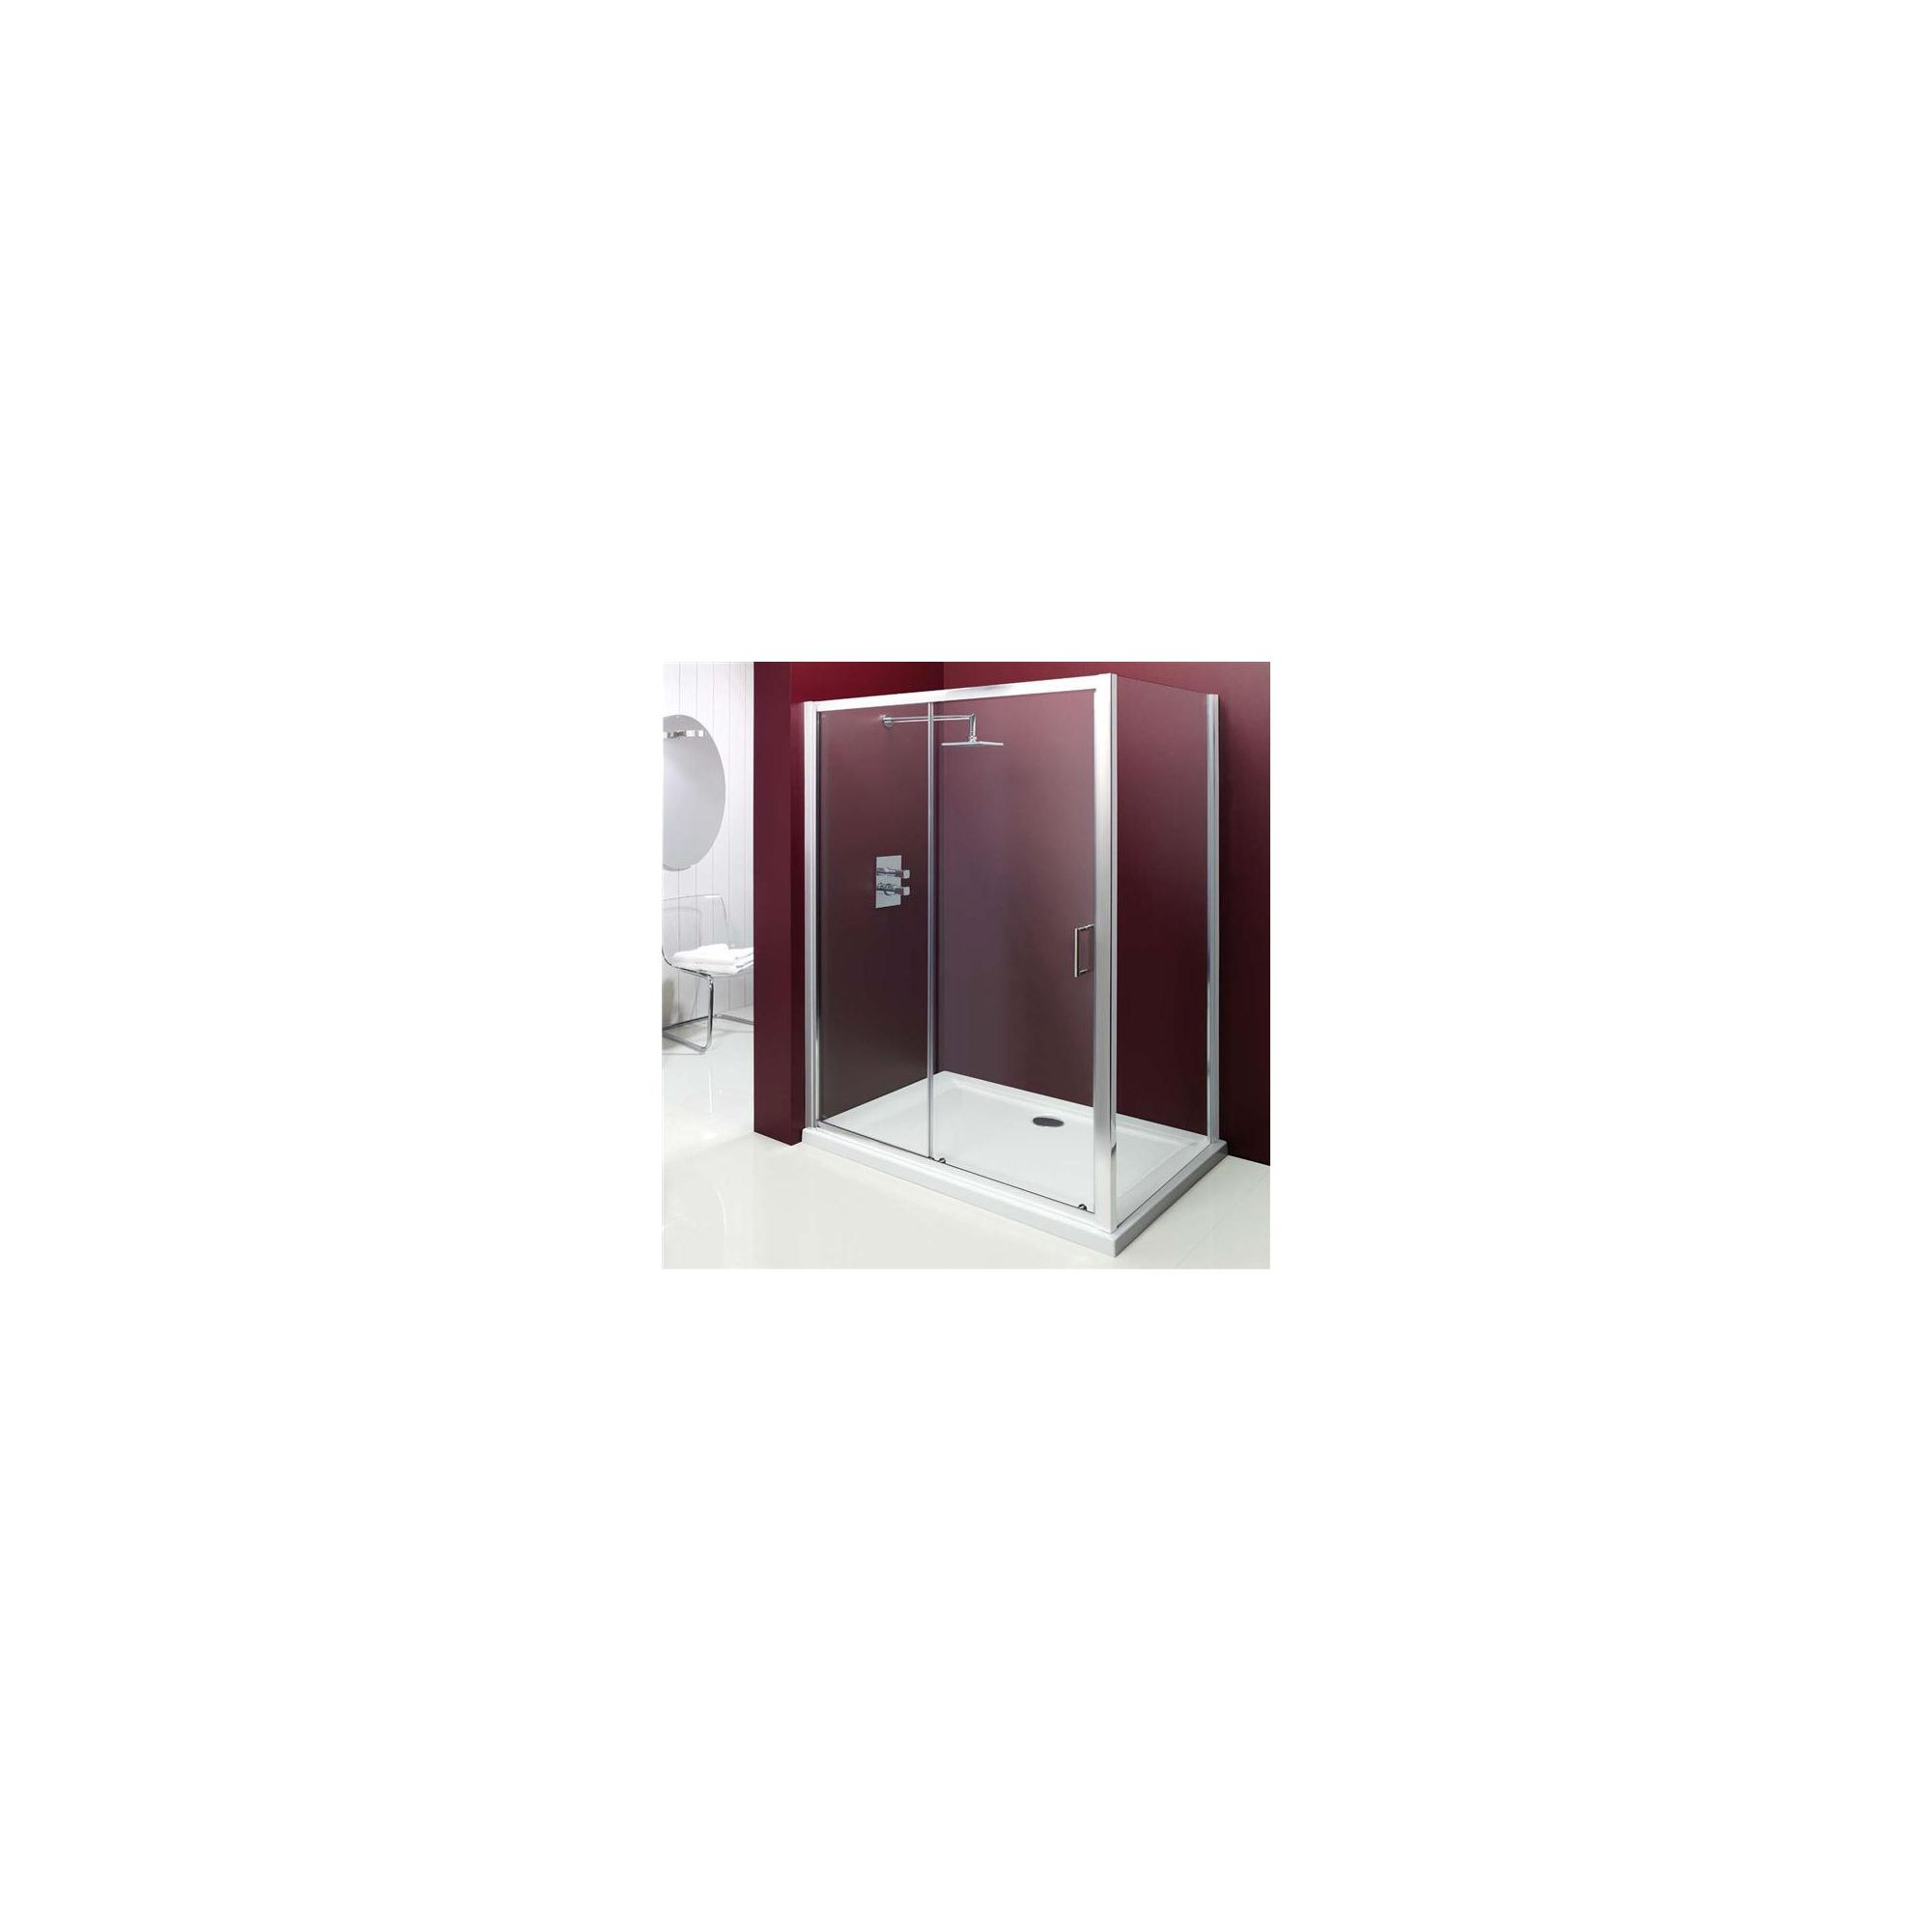 Merlyn Vivid Entree Sliding Door Shower Enclosure, 1200mm x 900mm, Low Profile Tray, 6mm Glass at Tesco Direct